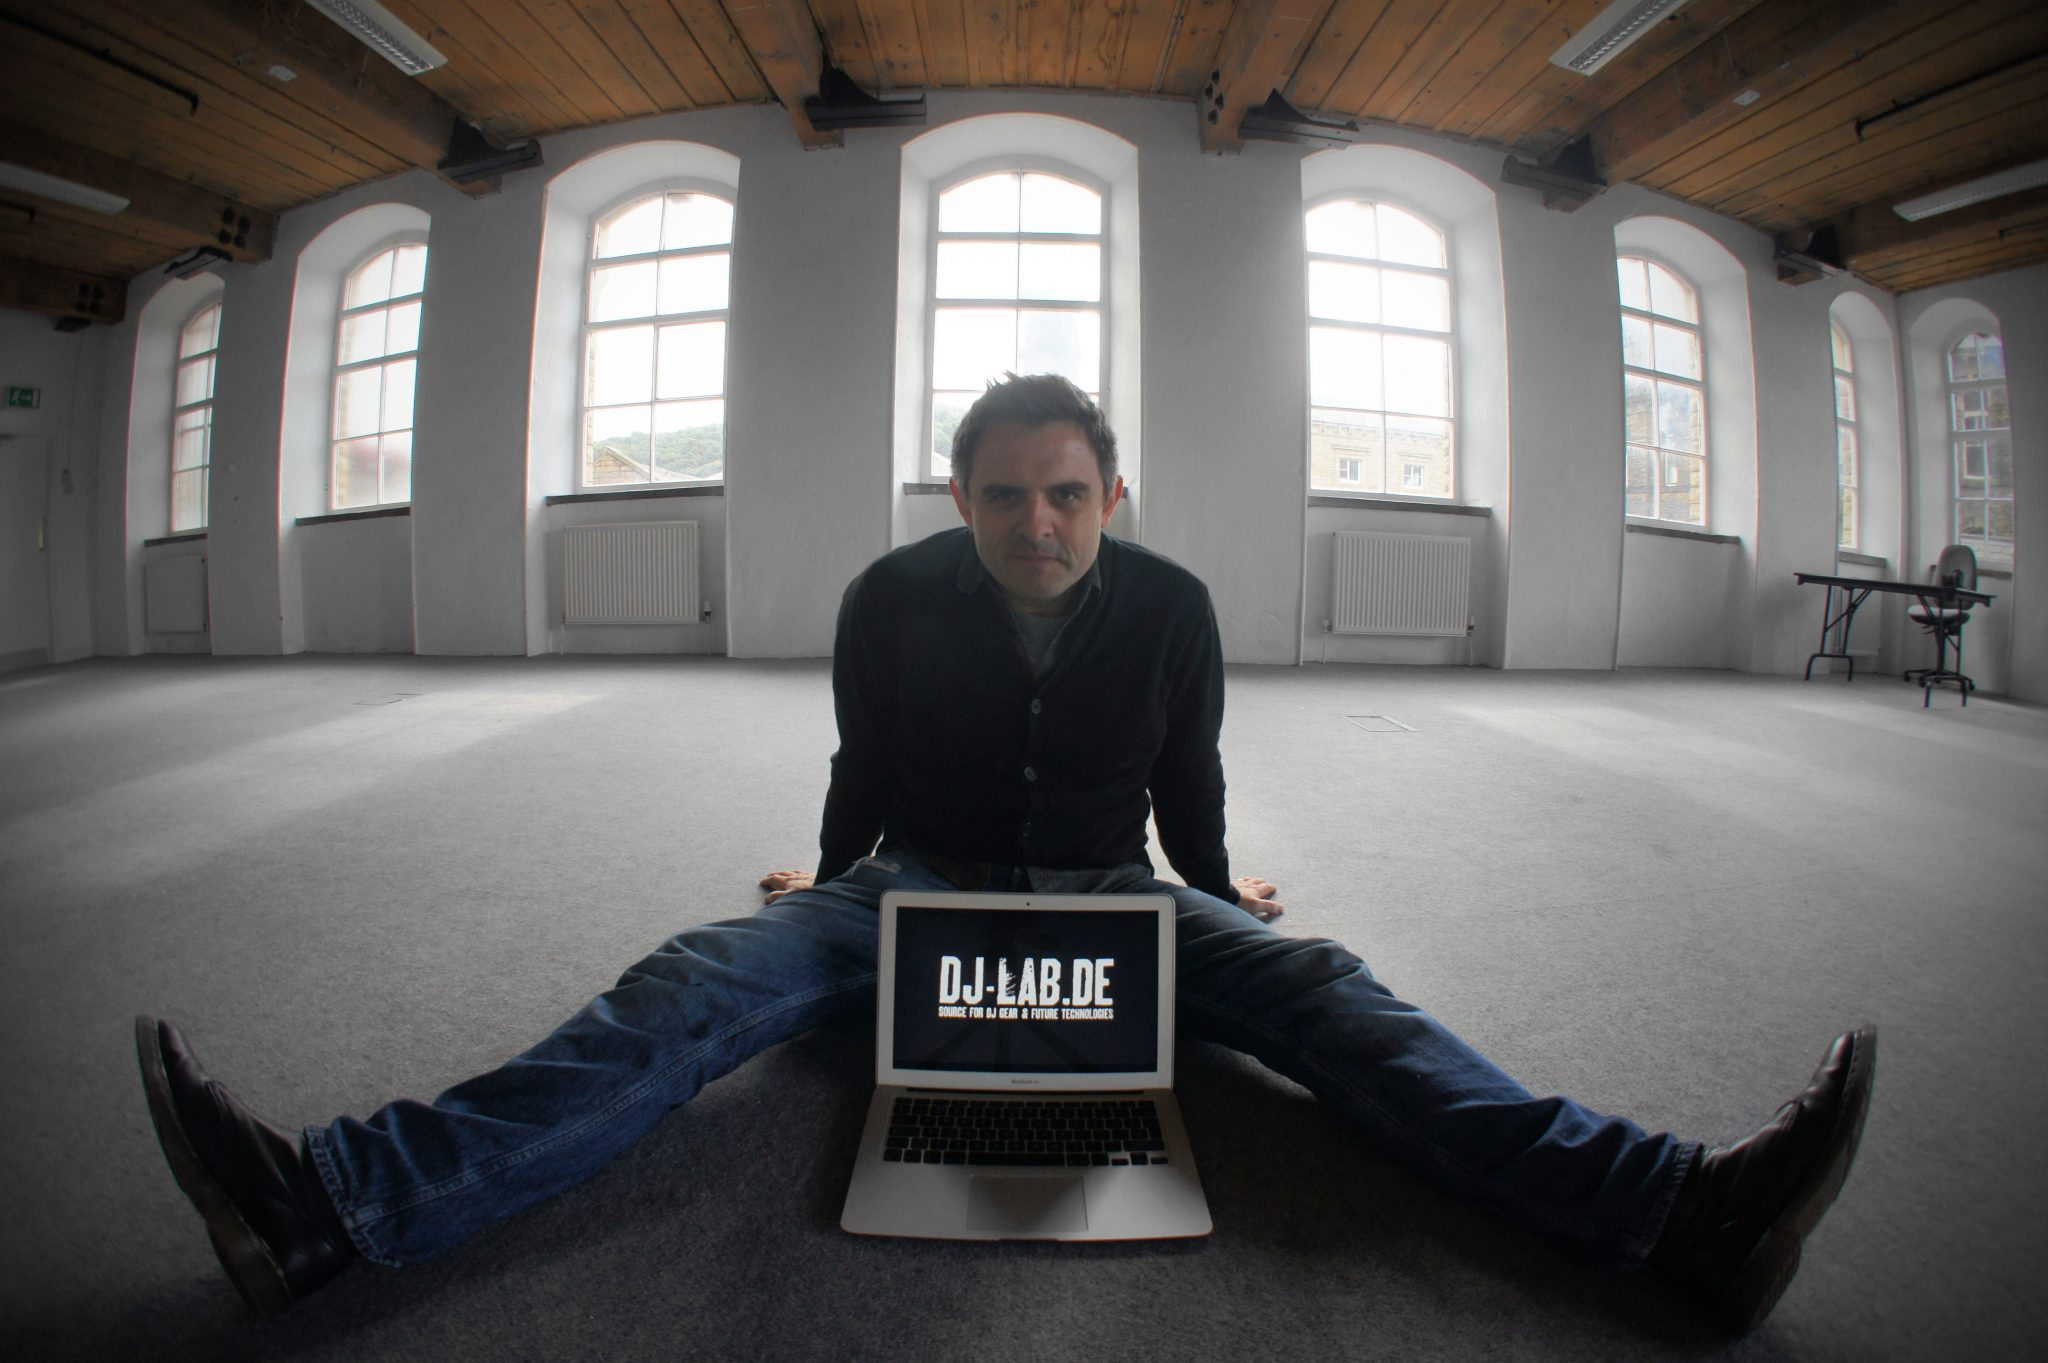 INTERVIEW: Me, with DJ-LAB.DE. What was I thinking? 6